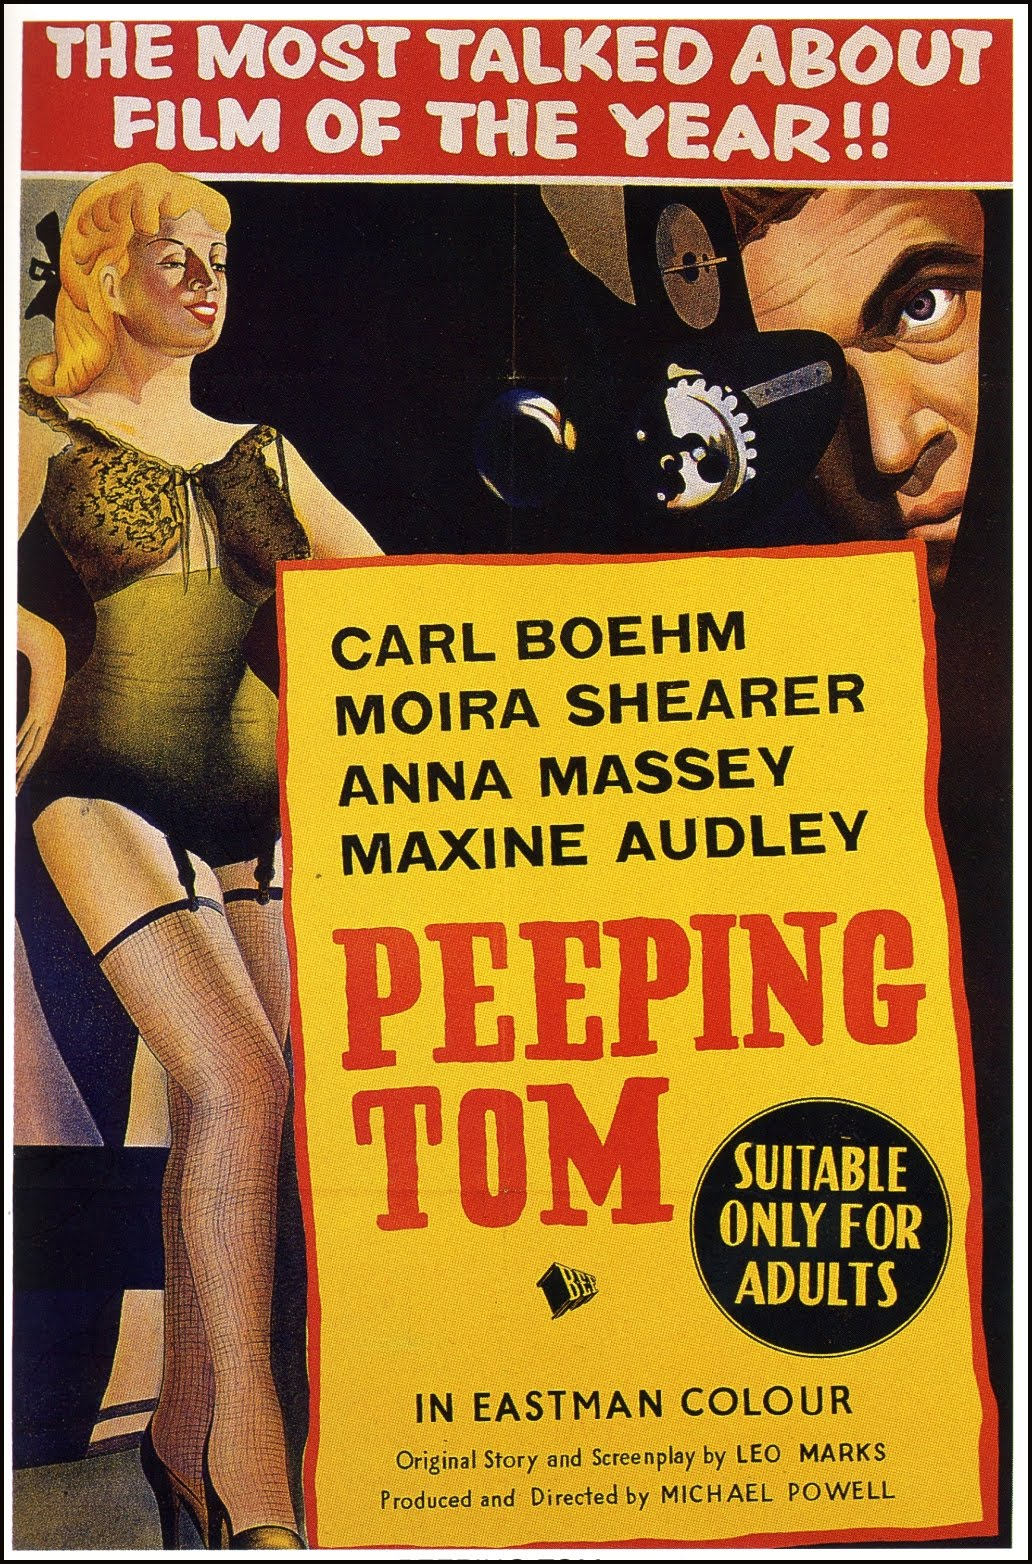 http://horrorpediadotcom.files.wordpress.com/2012/06/peeping-tom-1960-powell-film-poster1.jpg